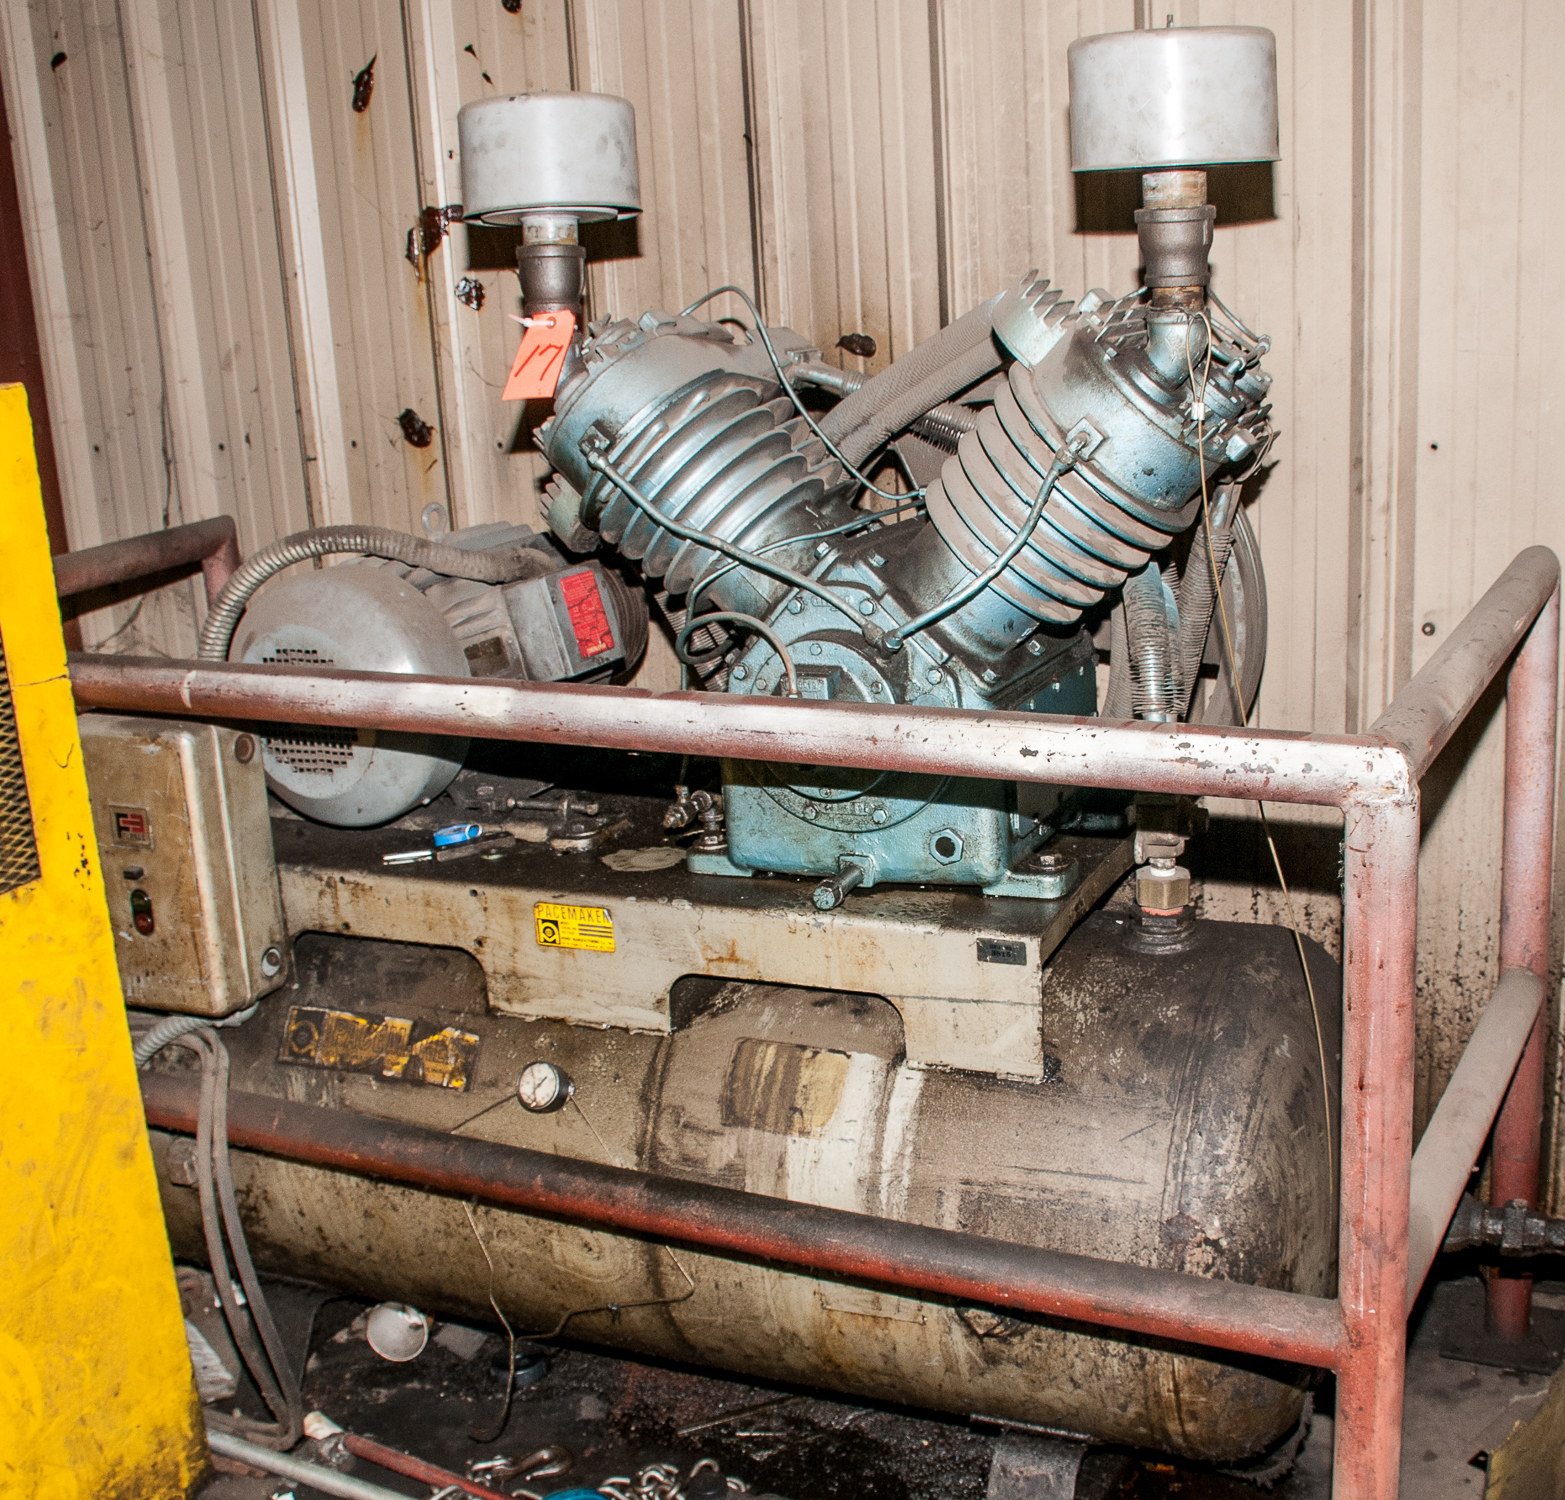 Pacemaker Air Compressor Mdl HT62B, s/n 3815, 220v, 20 hp, Estimate 80 Gal. Horizontal Tank, w/